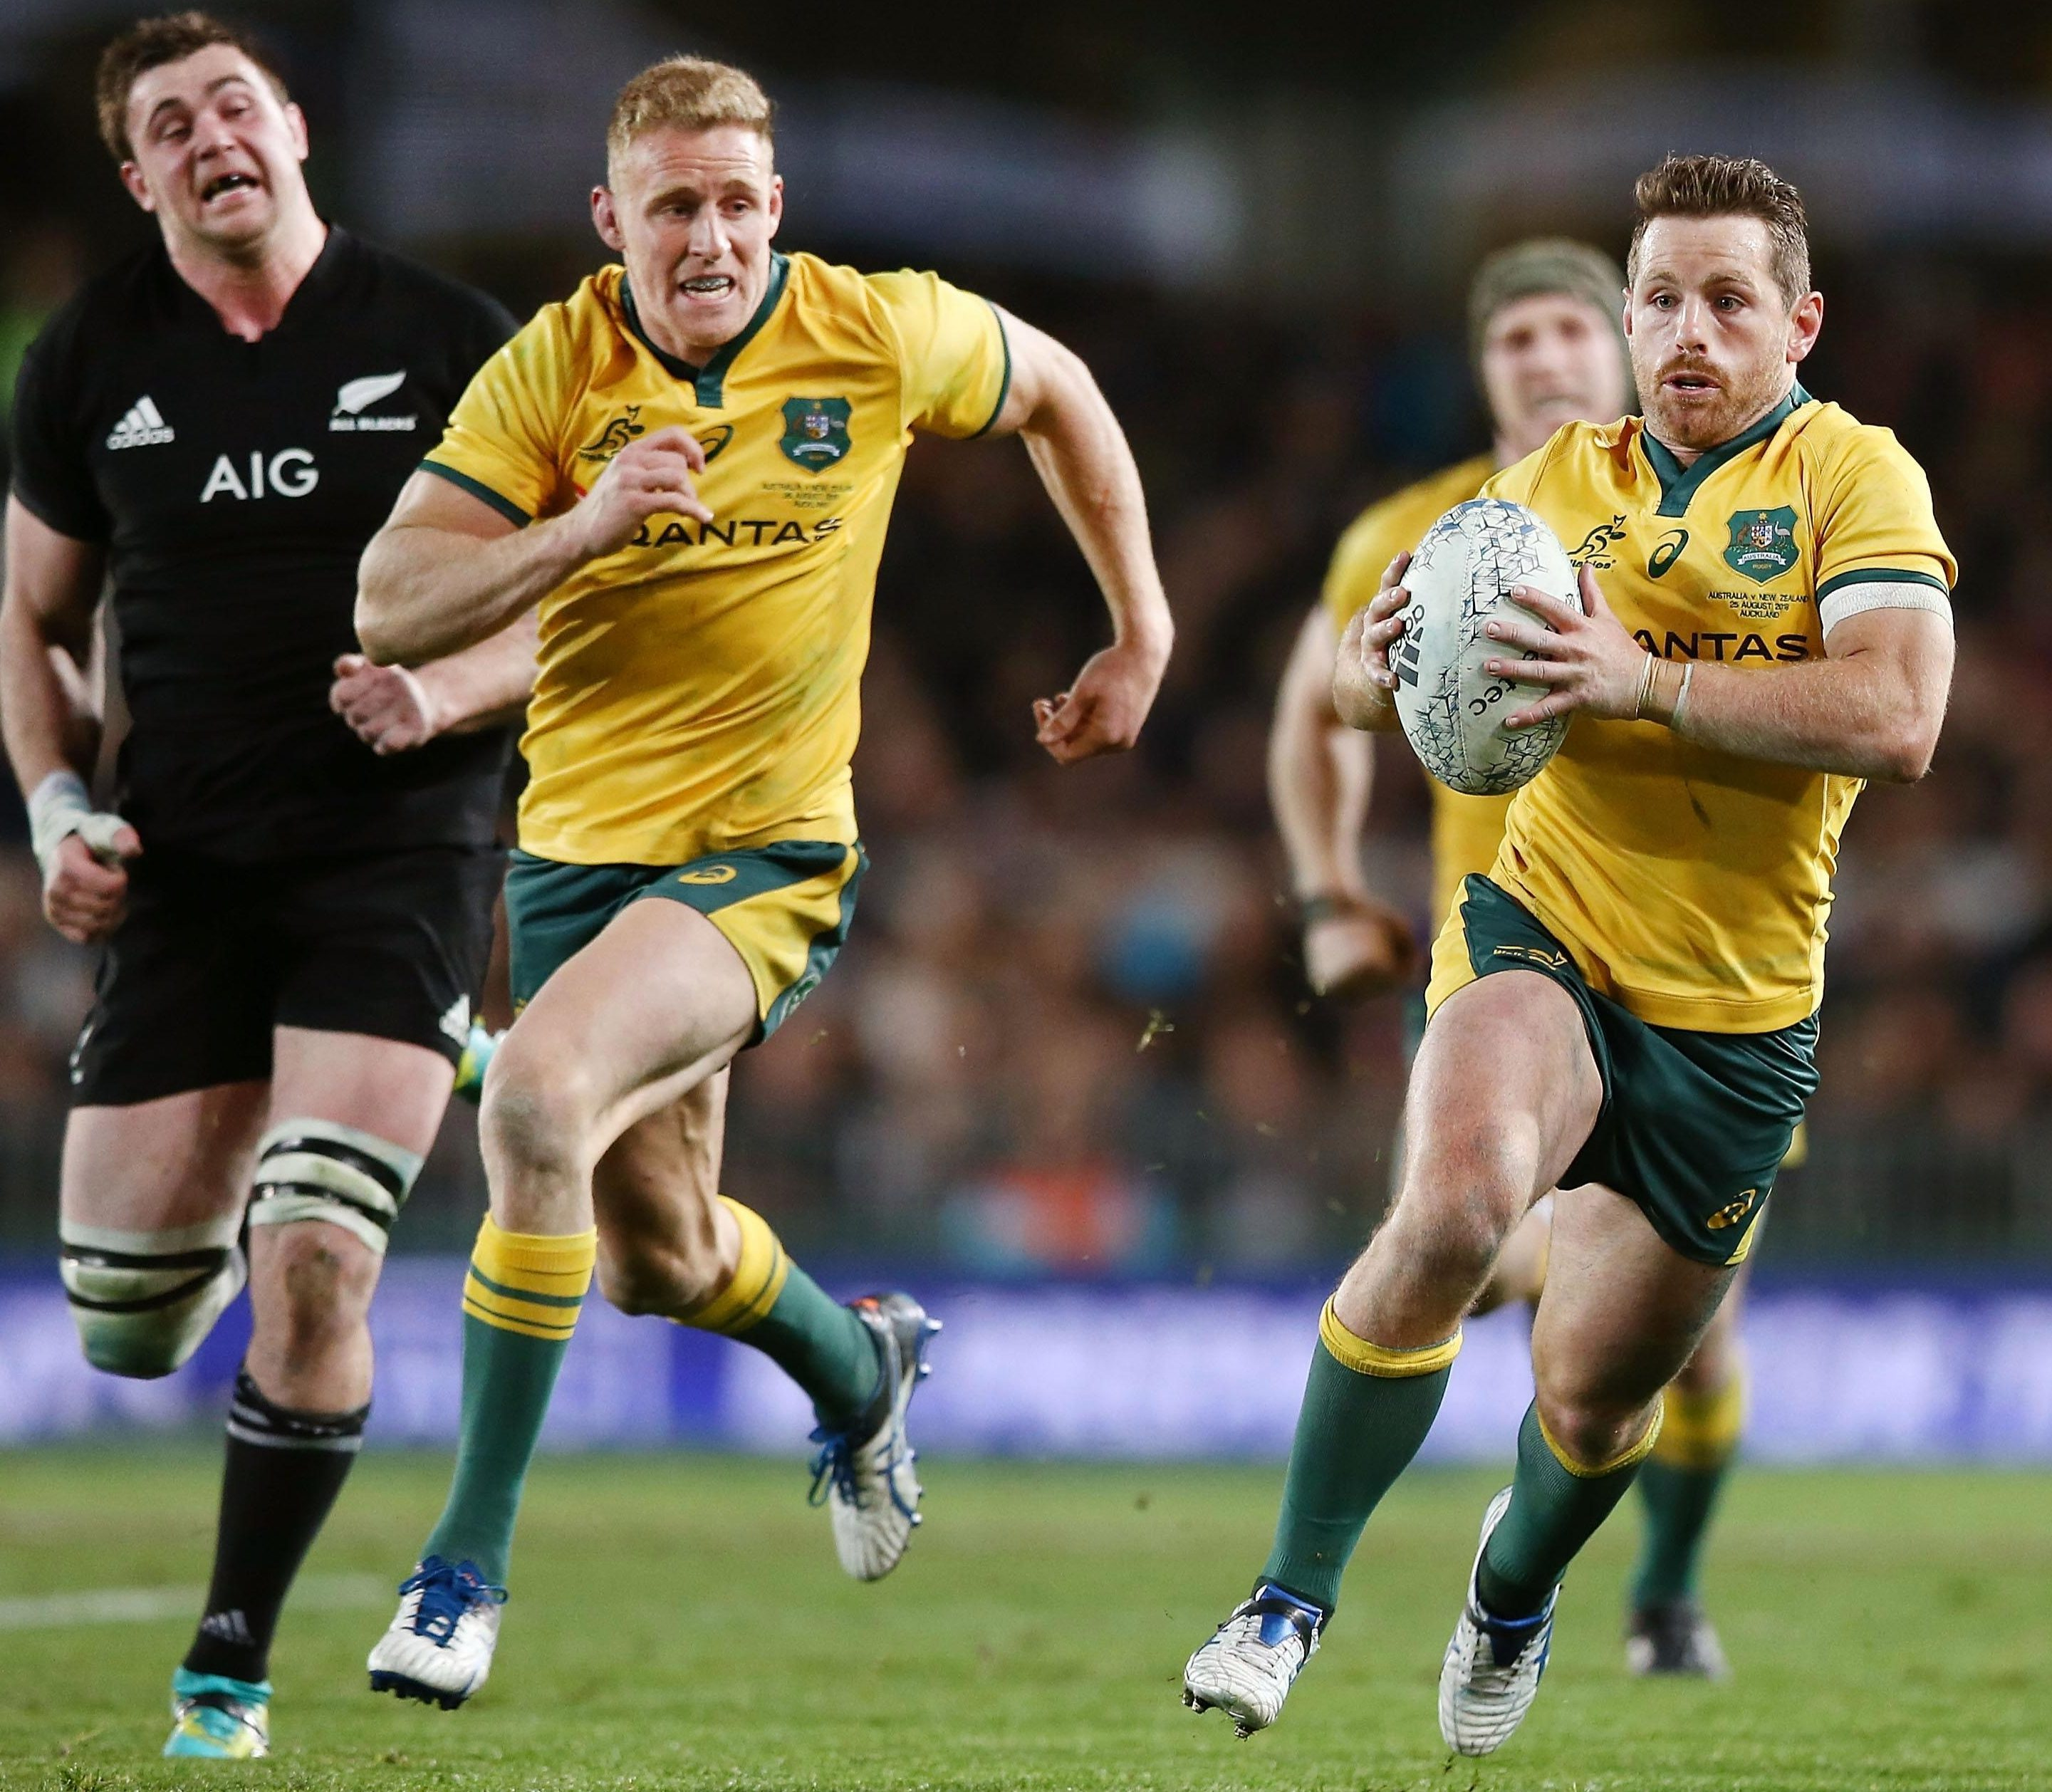 Ball-carrying Wallaby Bernard Foley will be on the bench on Saturday